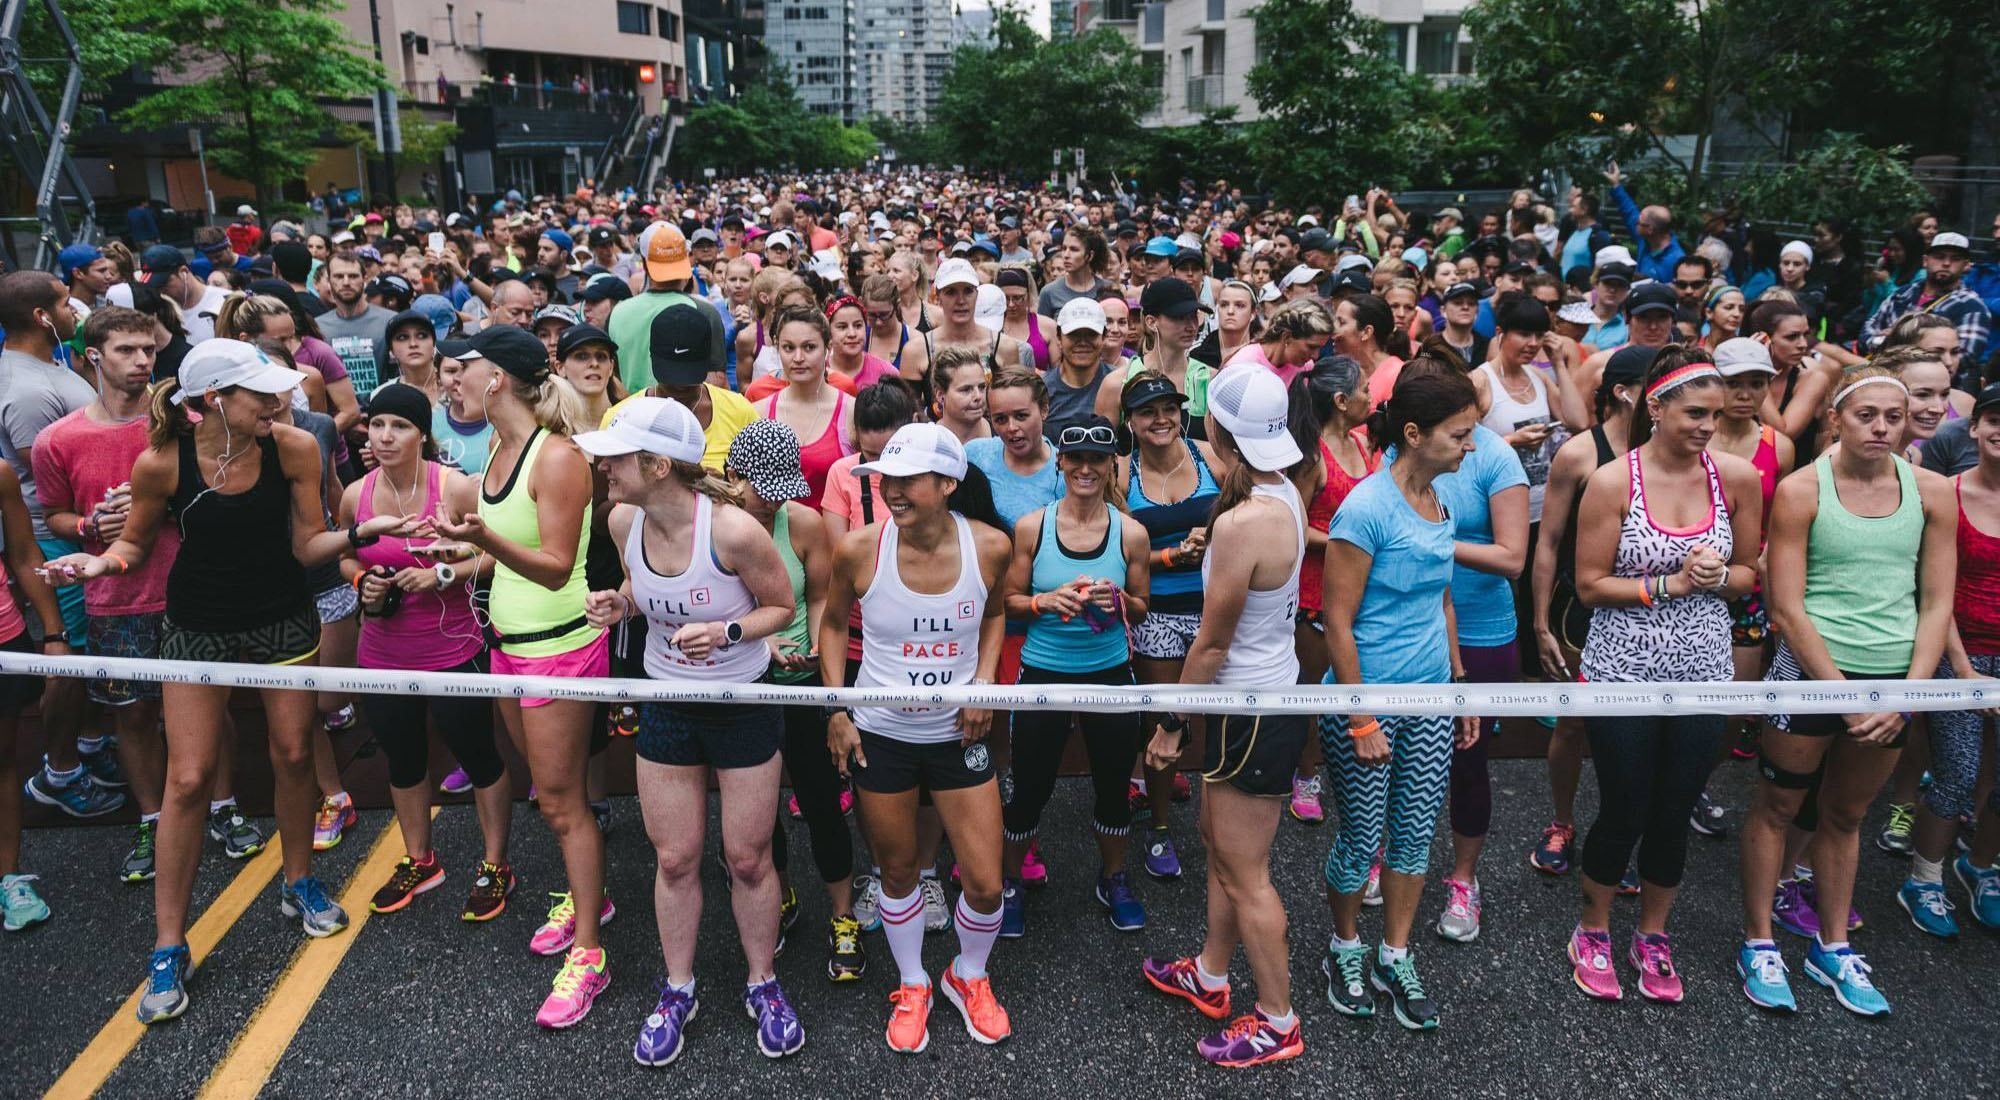 SeaWheeze changes registration to be through random draw